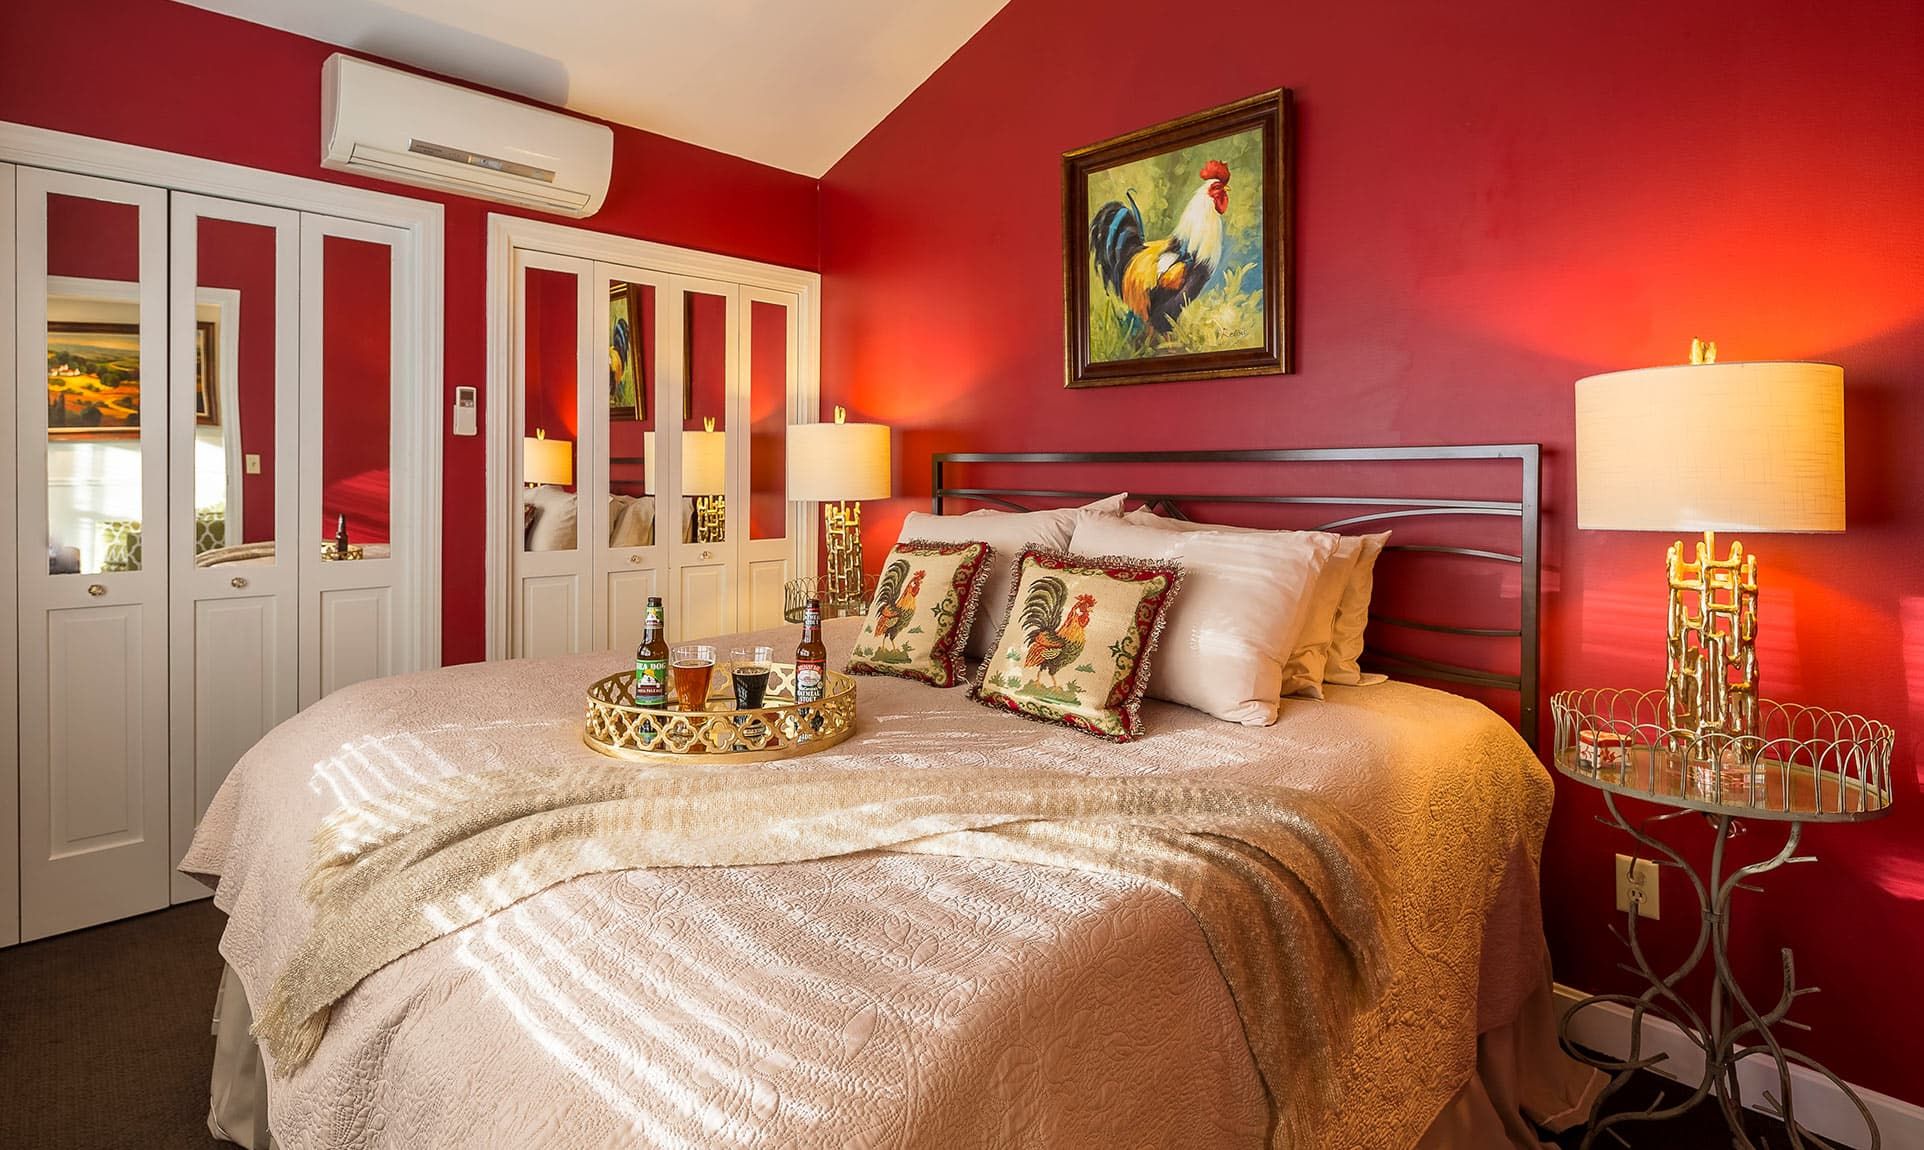 King Bed in Cottage Suite with Red Walls and Rooster Painting